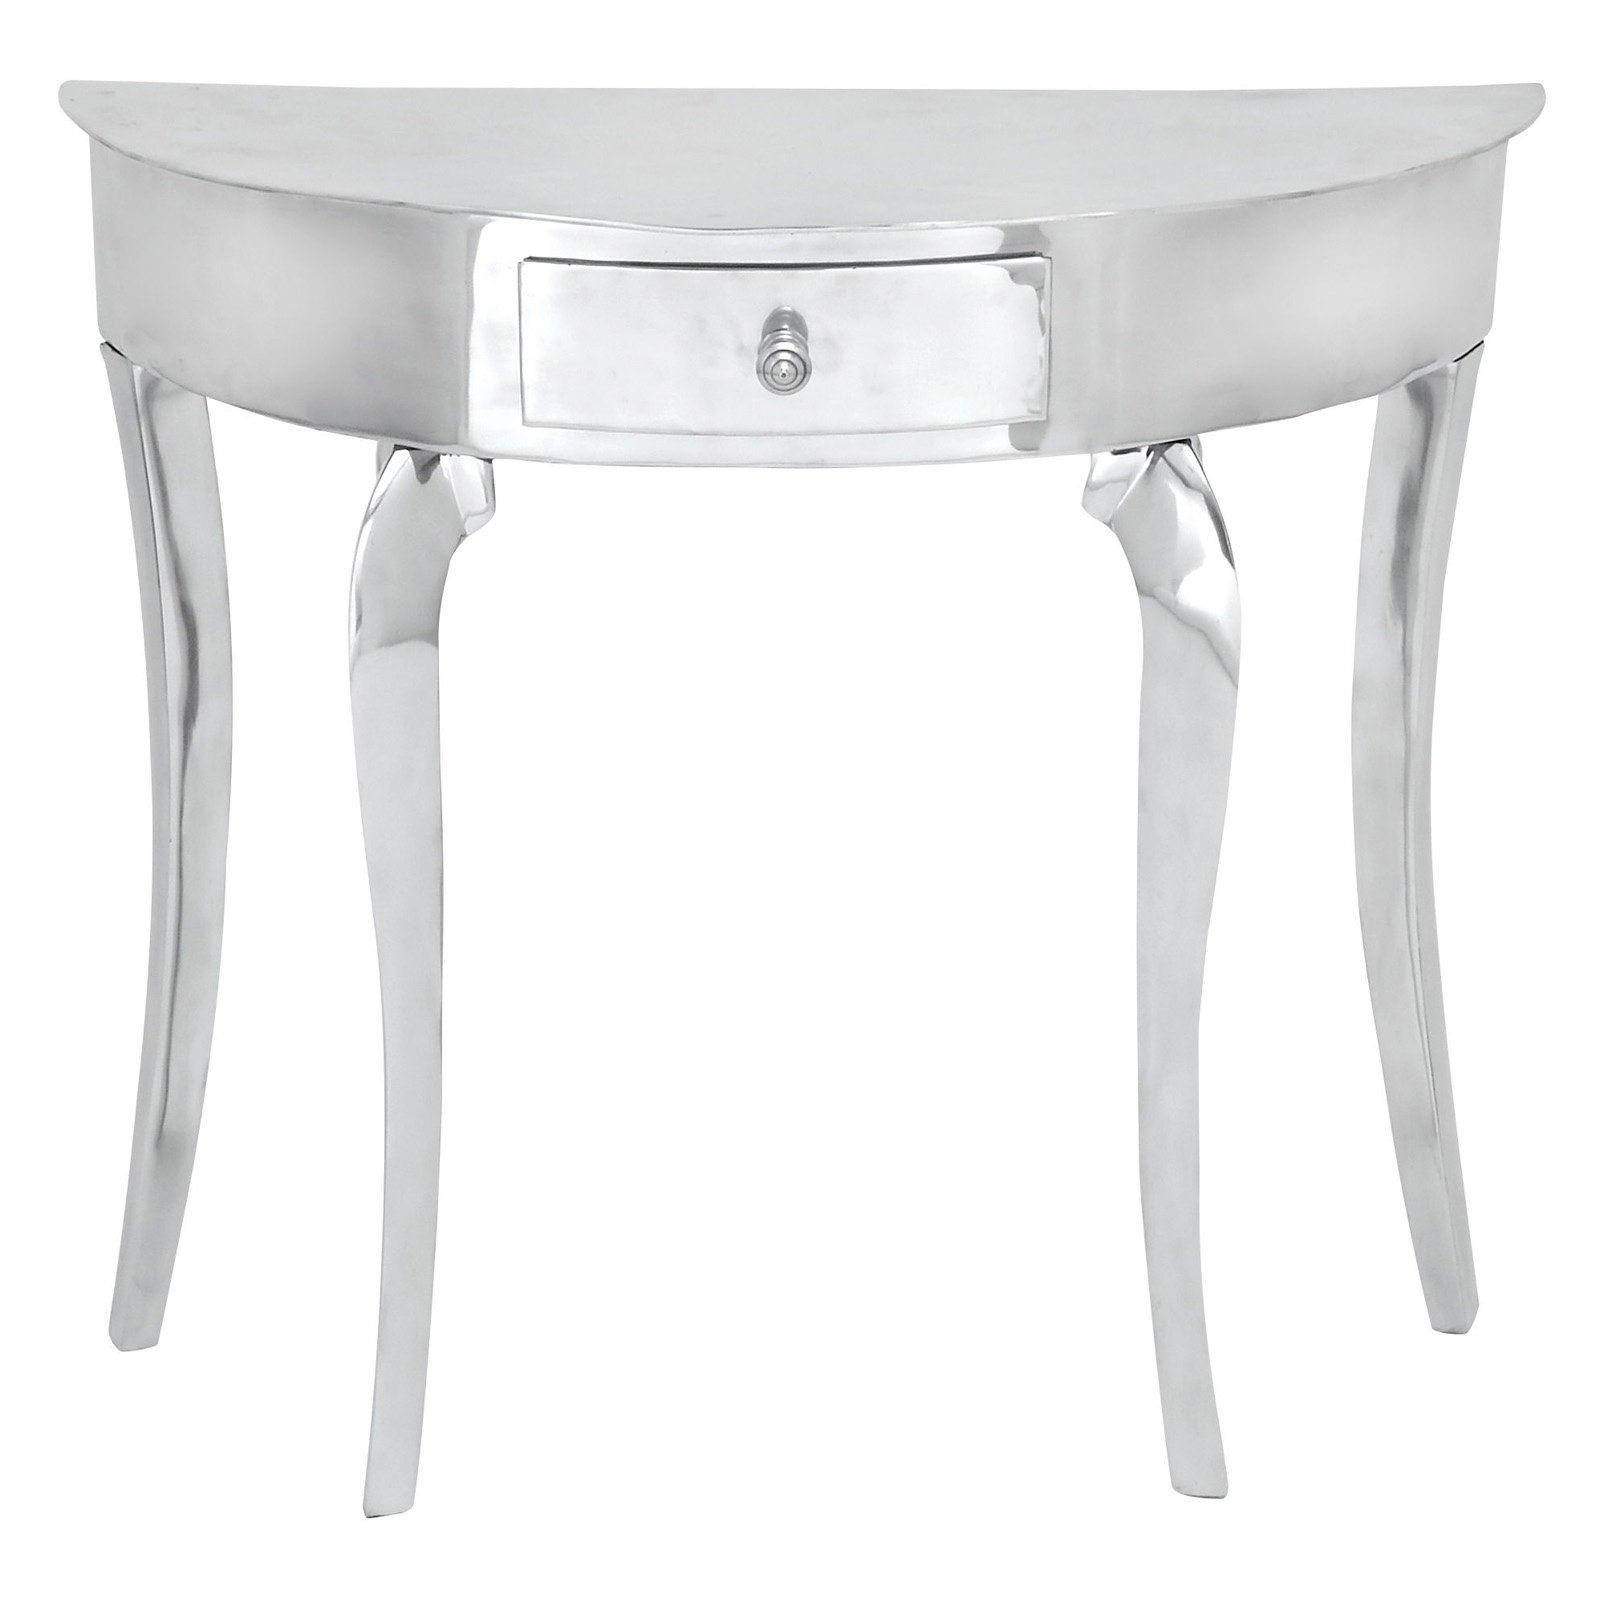 have aspire aluminum half moon console table white accent outdoor drinks cooler retro nest tables ikea shelving ideas dale tiffany ceiling lights corner cabinet hobby lobby